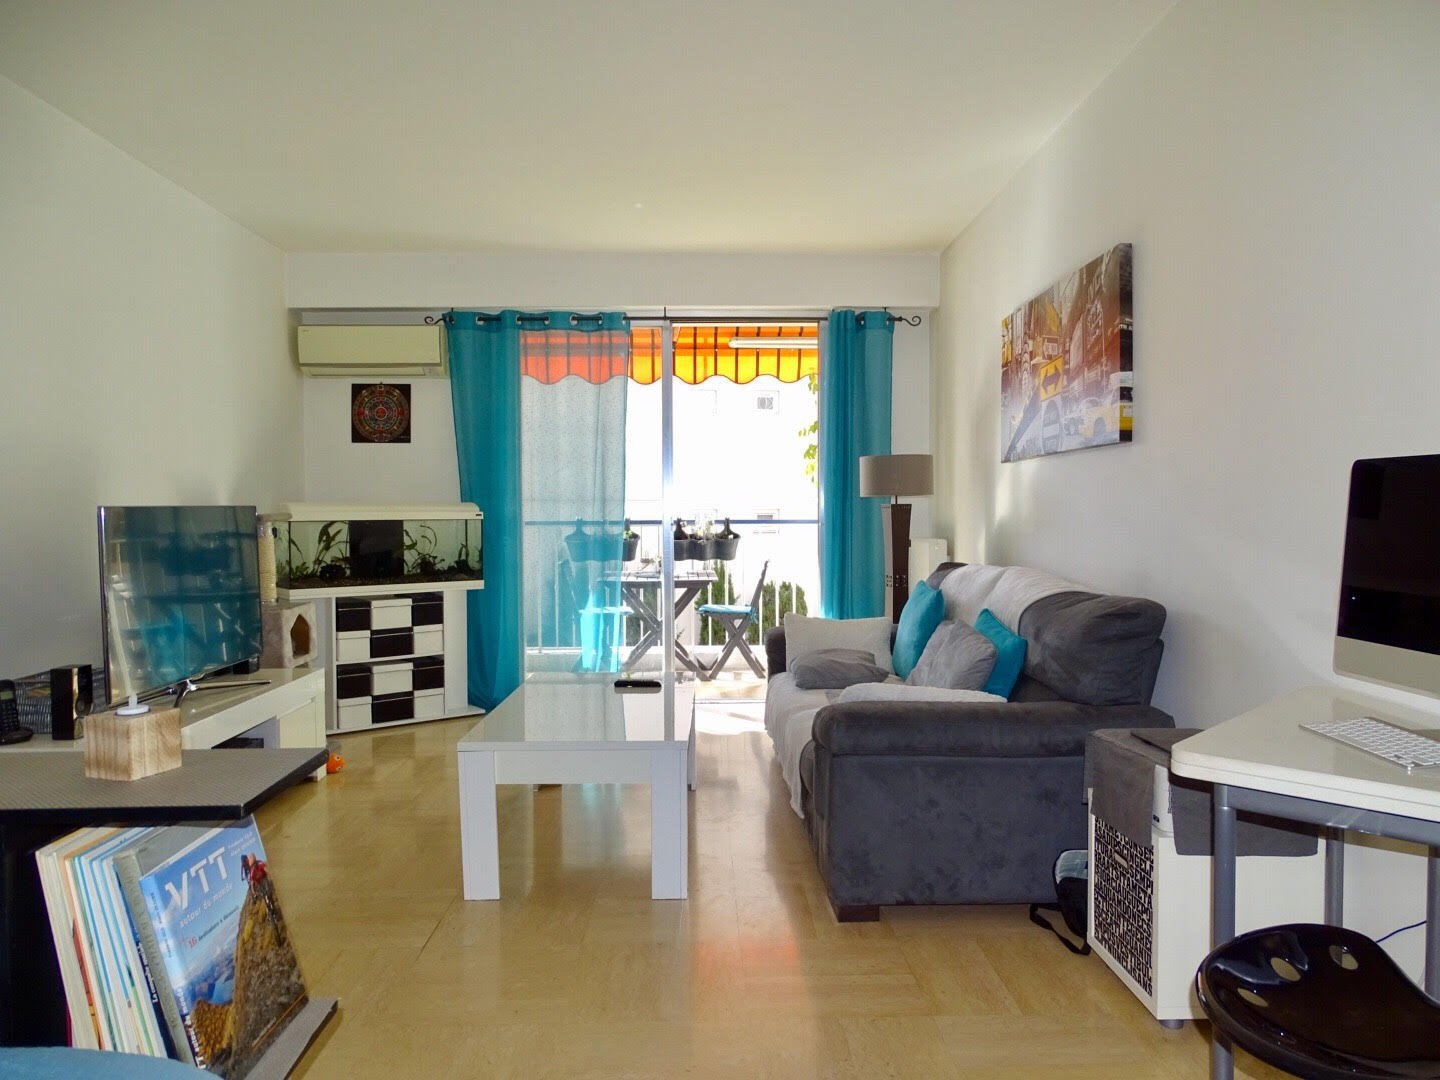 EXCLUSIVITE - NICE LE RAY - APPARTEMENT F2 - 55M² - TERRASSE - CALME